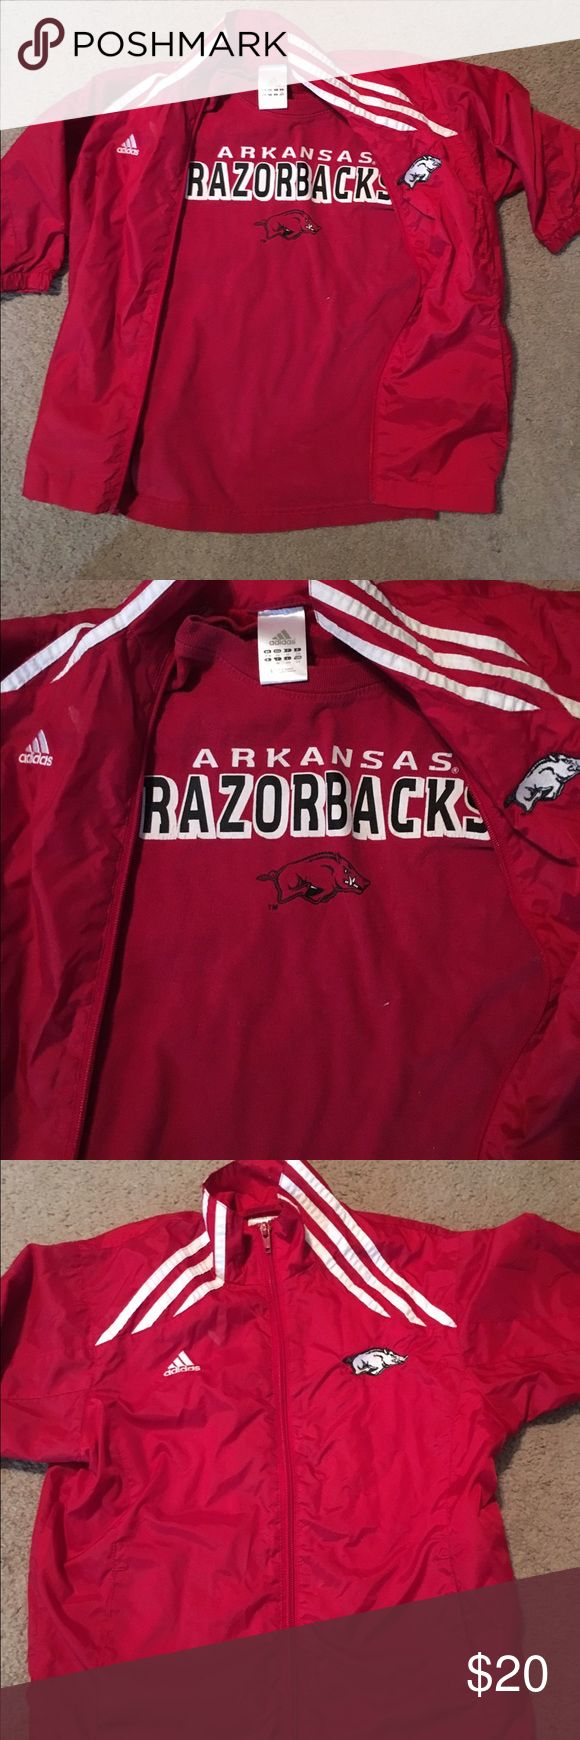 Arkansas Razorback wind breaker and shirt Arkansas razorback a zip up and shirt both are included in this bundle lightly worn on the T-shirt the tag is torn off size 6 jacket and I believe size 6/7 shirt both in good condition Matching Sets